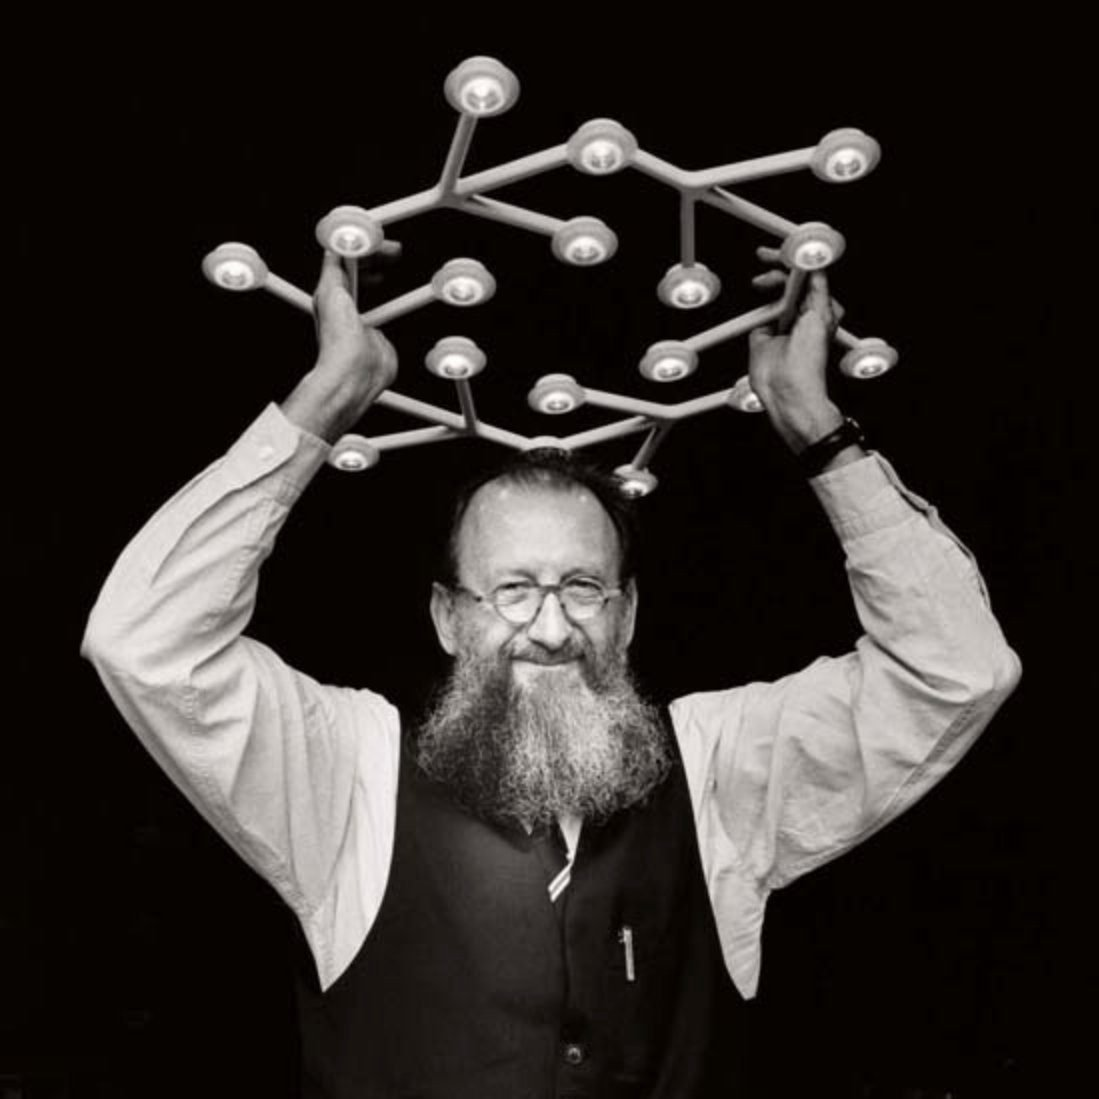 Italian designer Michele de Luchi with a long beard holding his Led Net lamp manufactured by Artemide